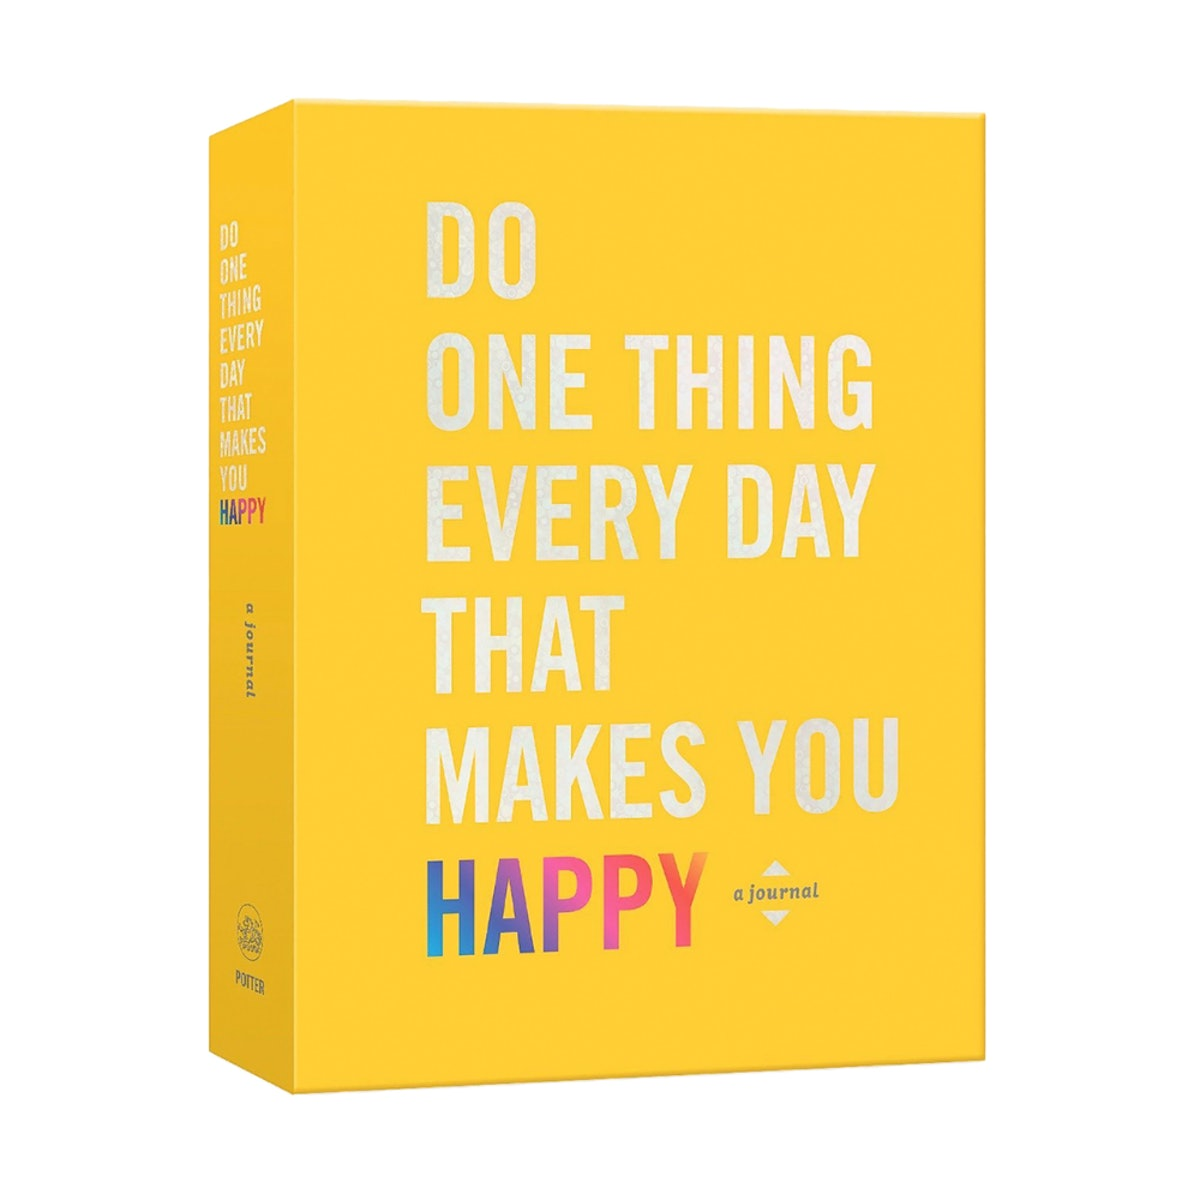 'Do One Thing A Day That Makes You Happy' by Penguin Random House